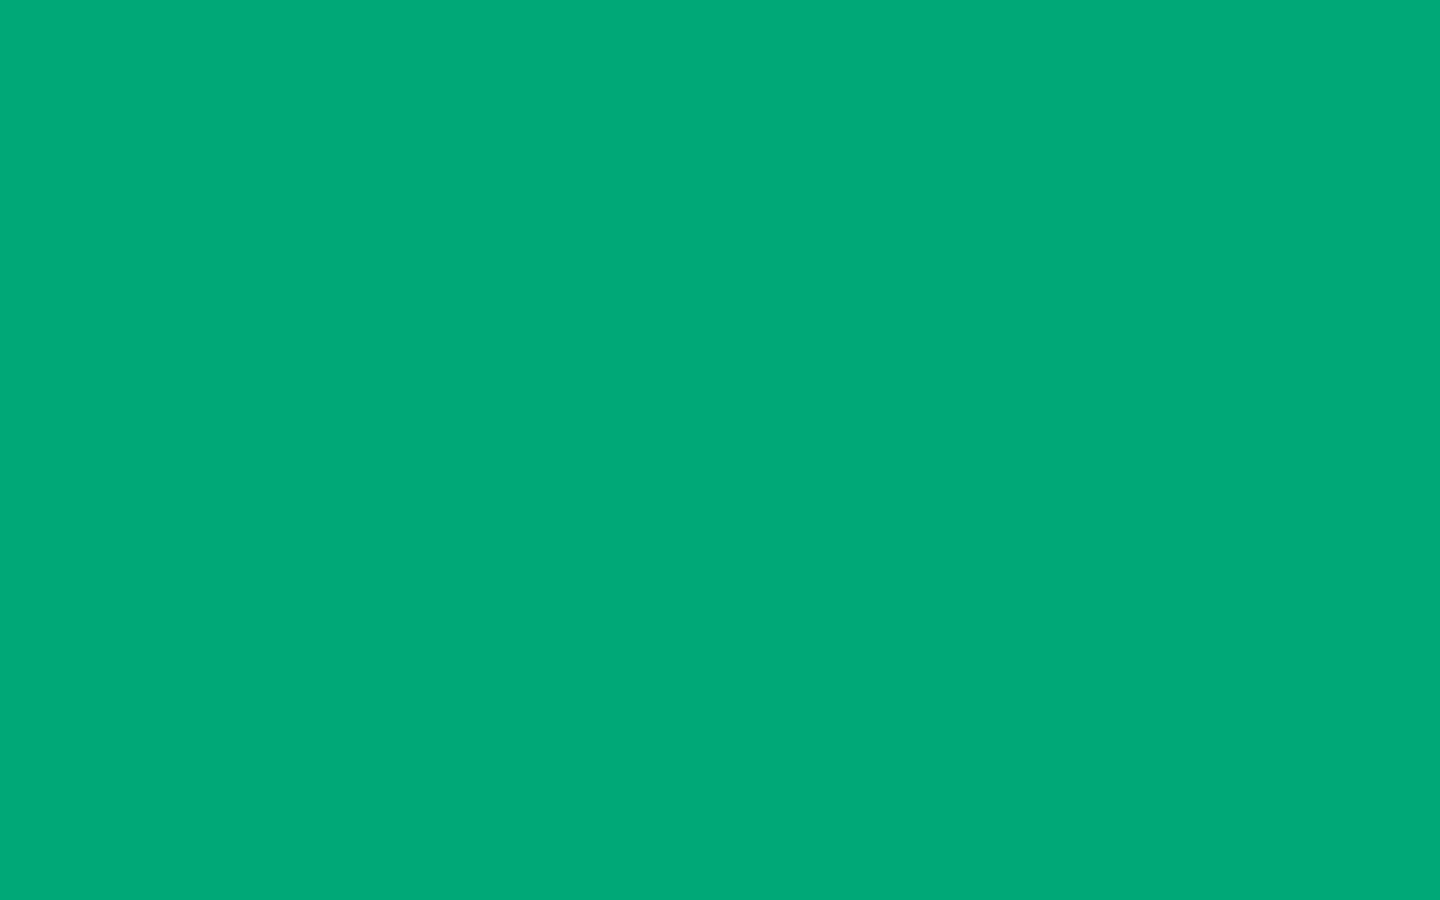 1440x900 Green Munsell Solid Color Background